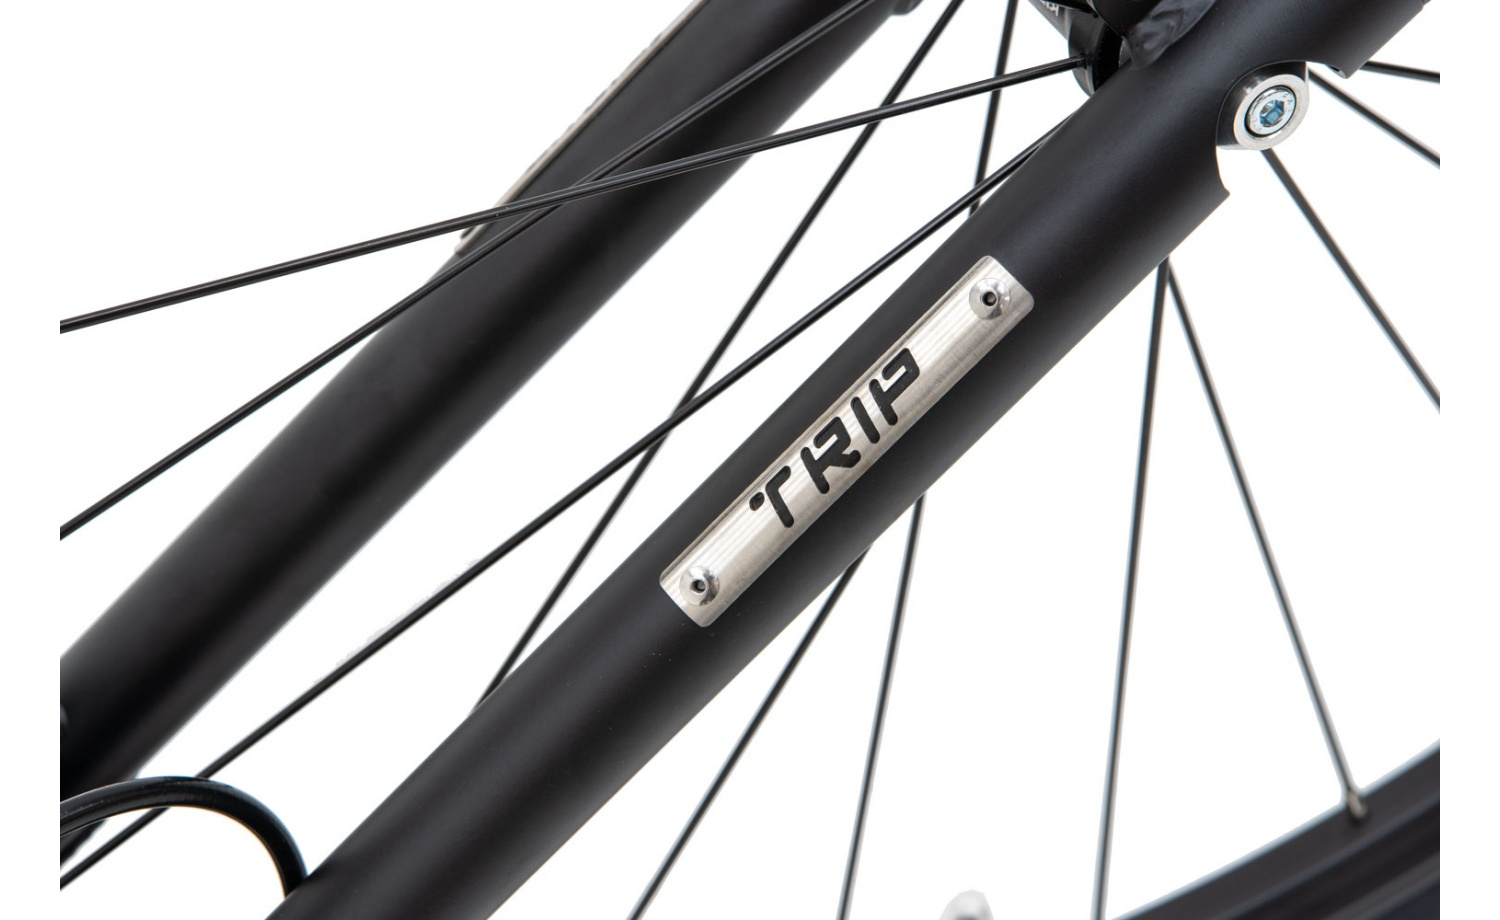 Footbike KOSTKA TRIP All Black (G5) - Limited edition